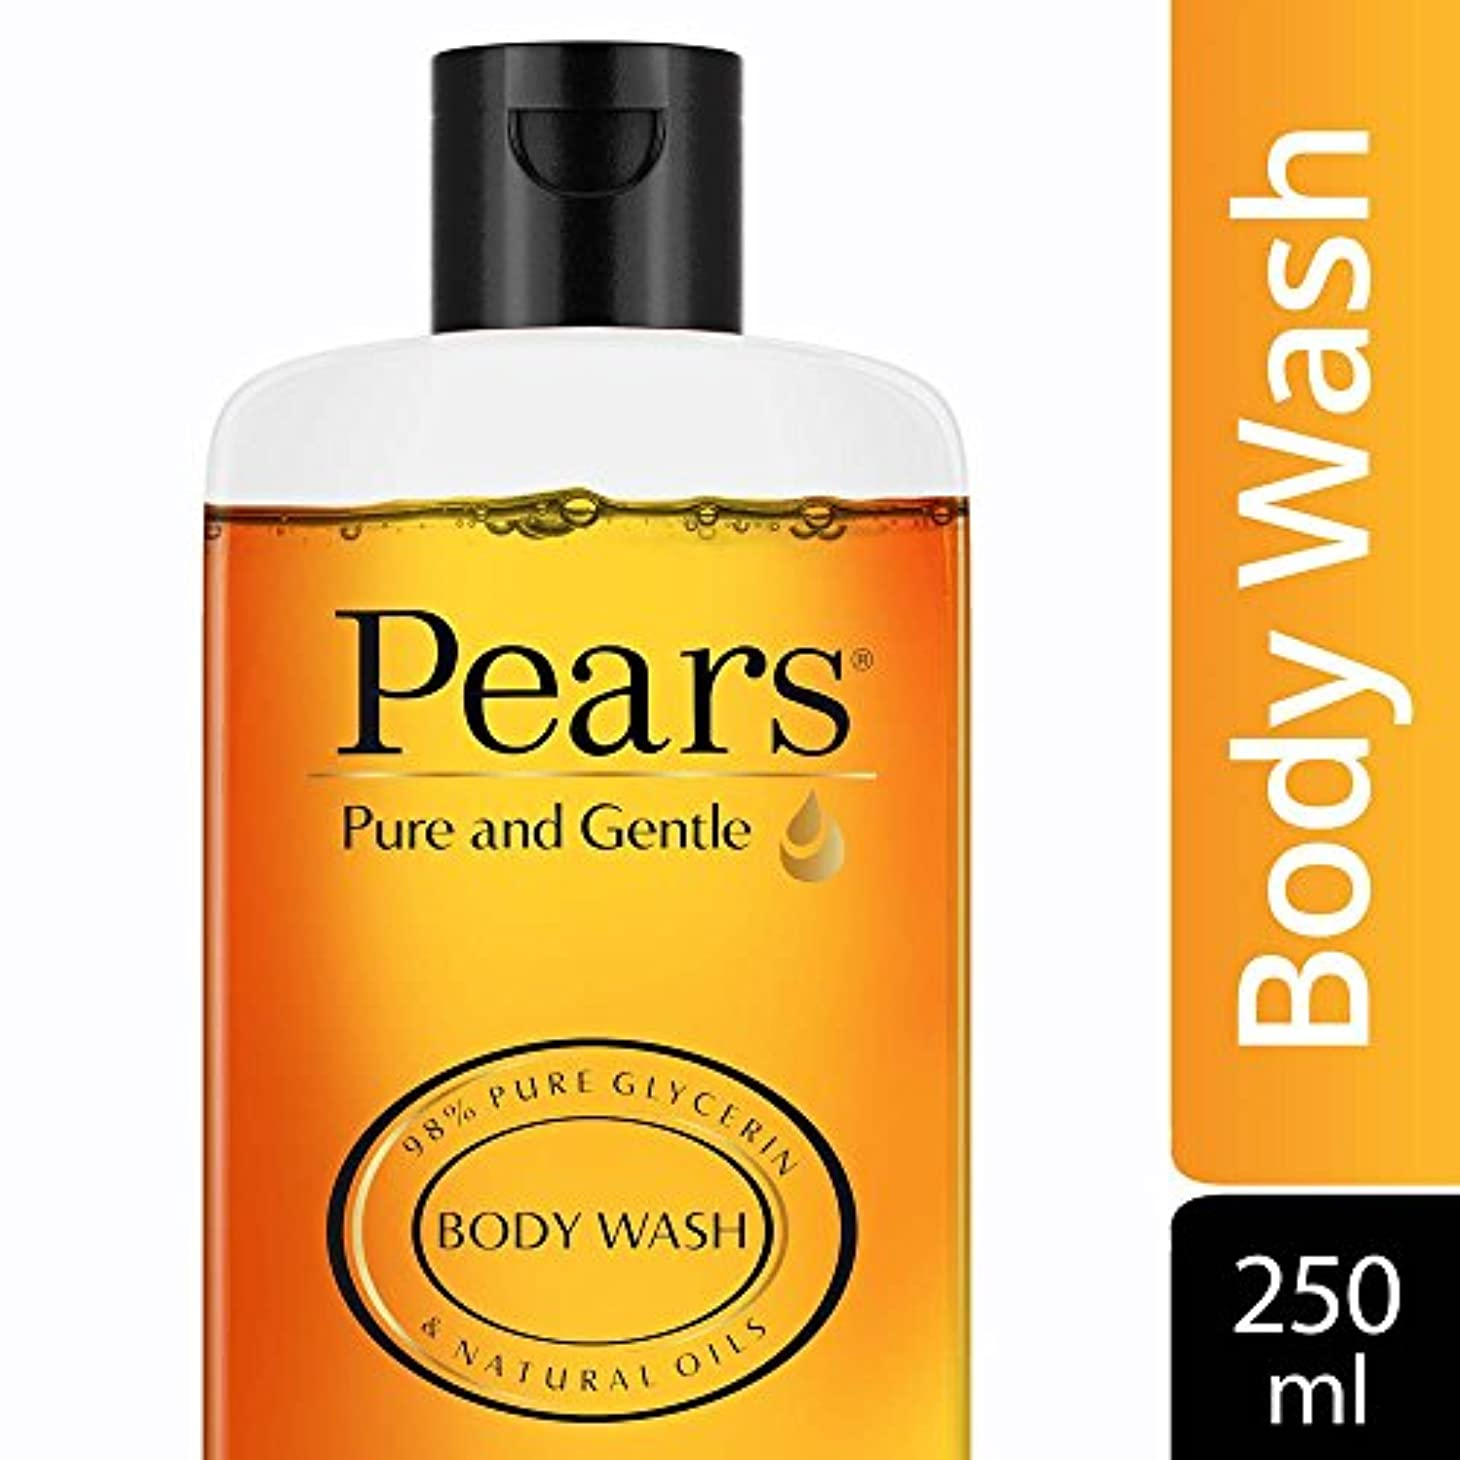 びん利用可能フルーツ野菜Pears Pure and Gentle Shower Gel, 250ml